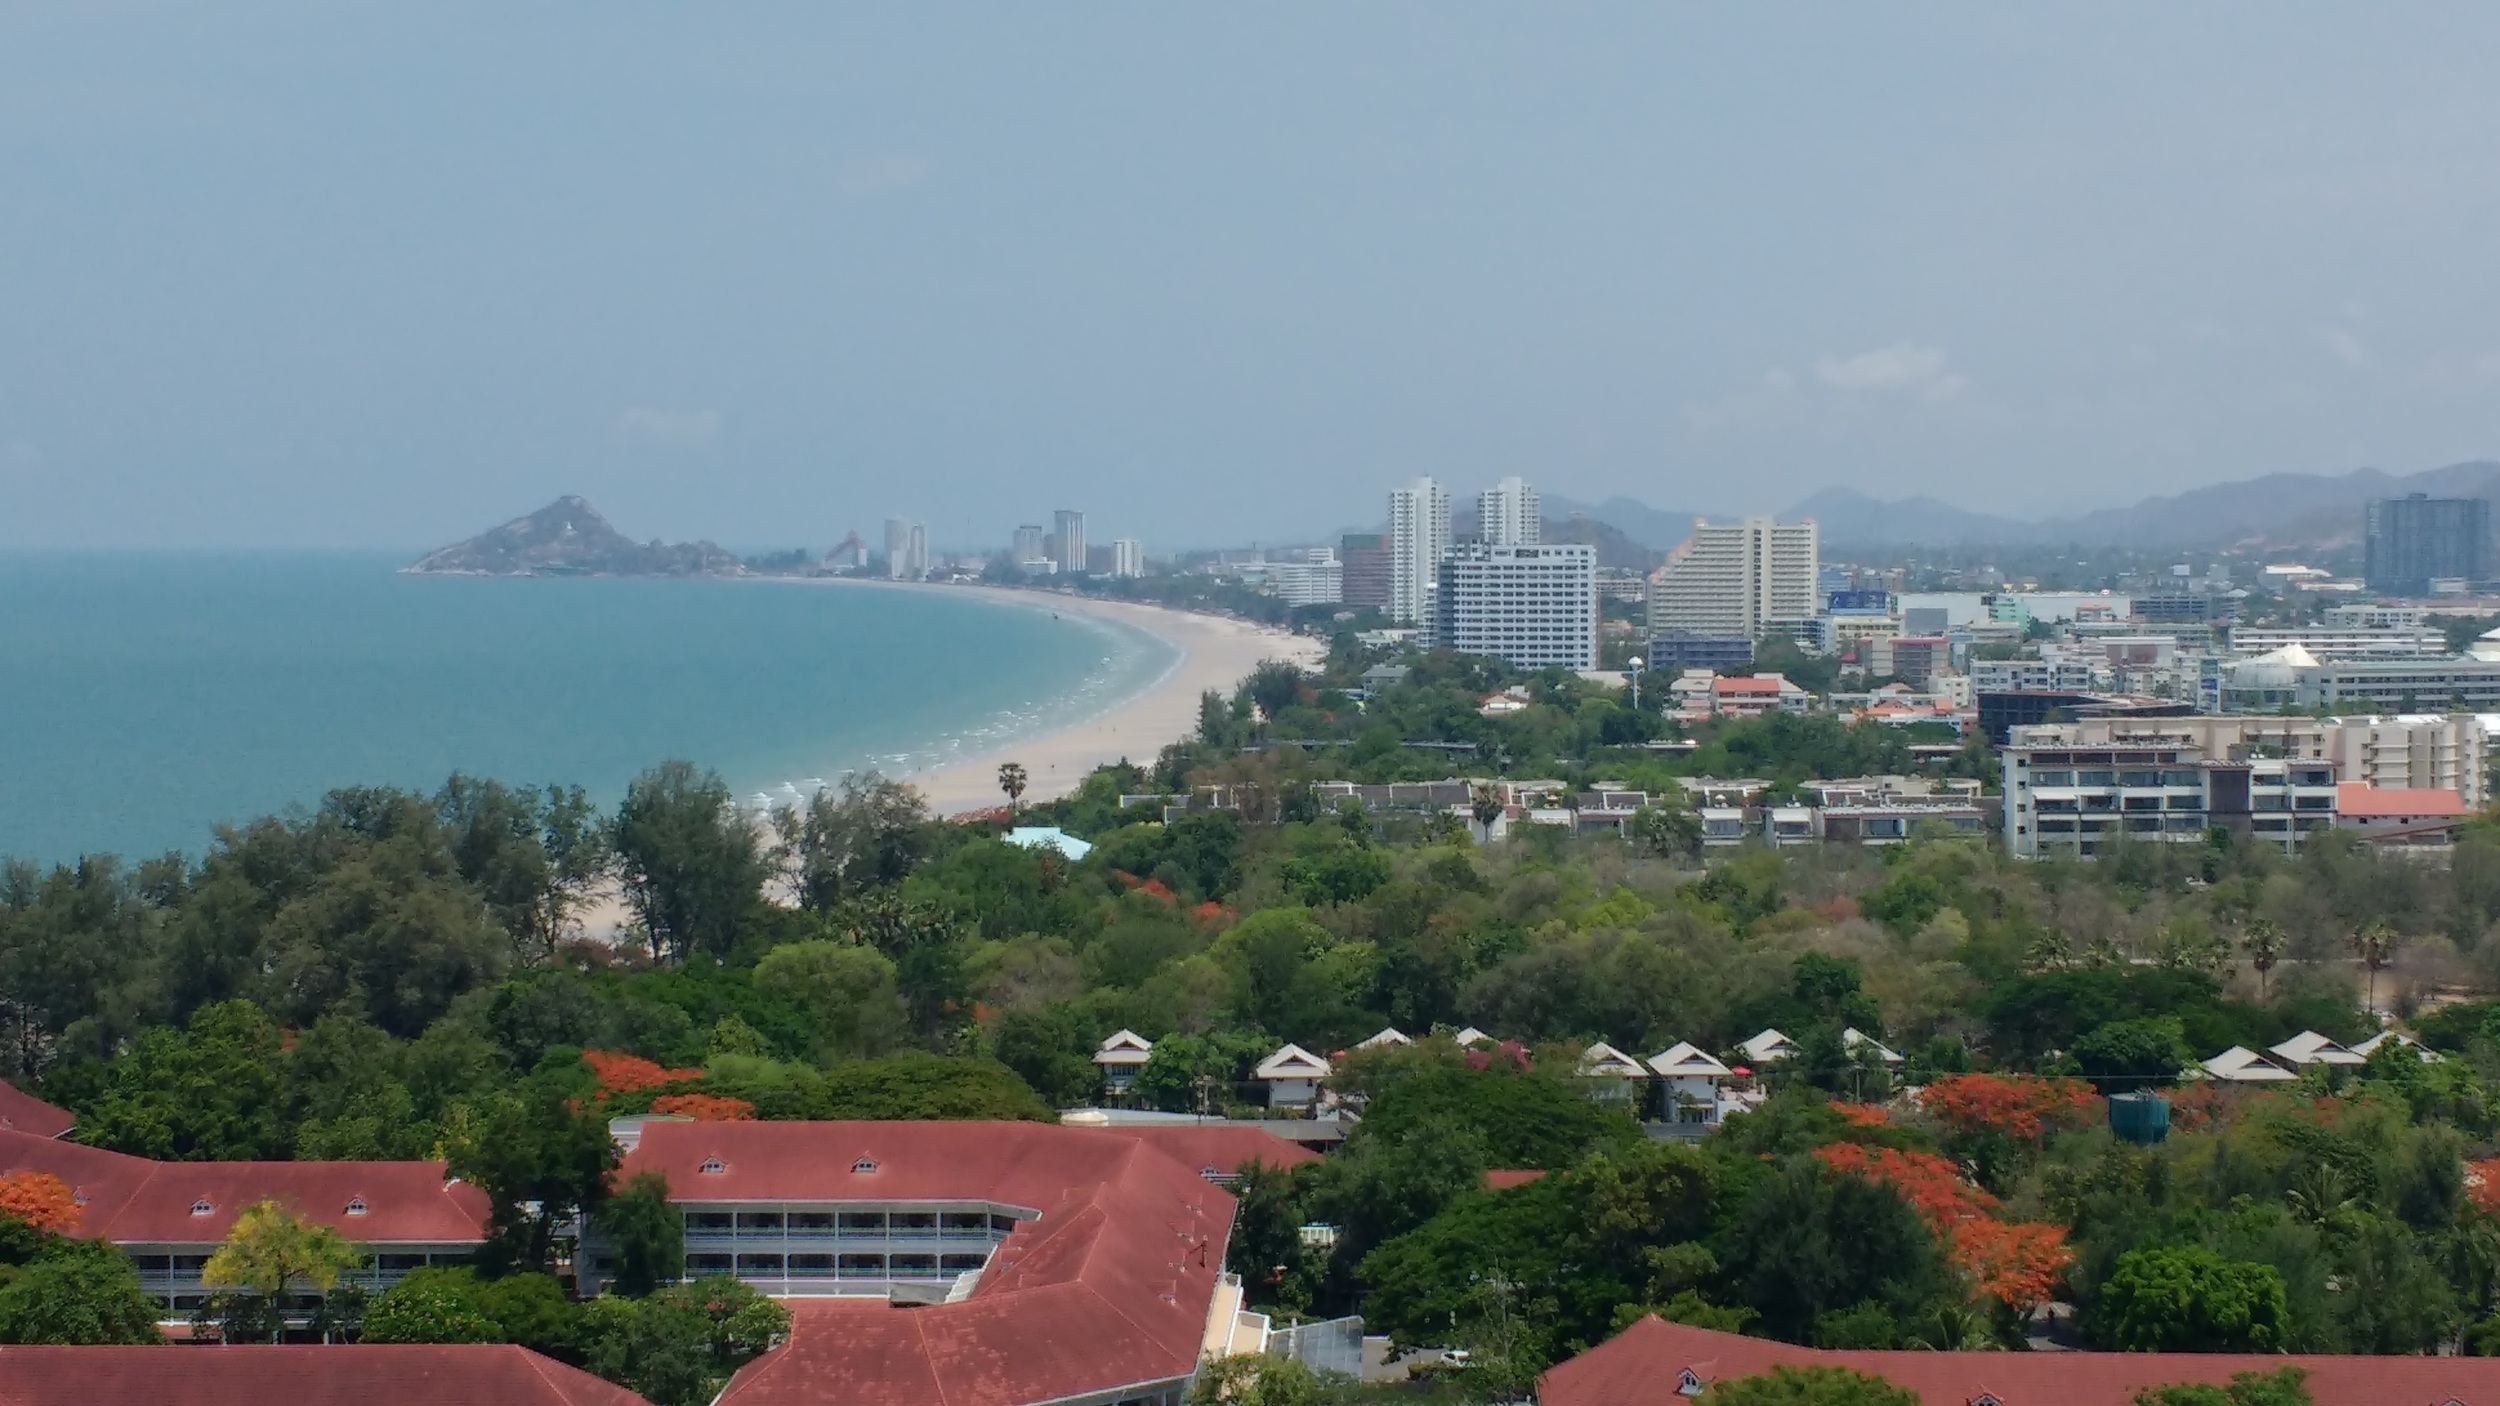 View south of Hua Hin from Hilton hotel. Khao Takieb is the rock at the end of the bay